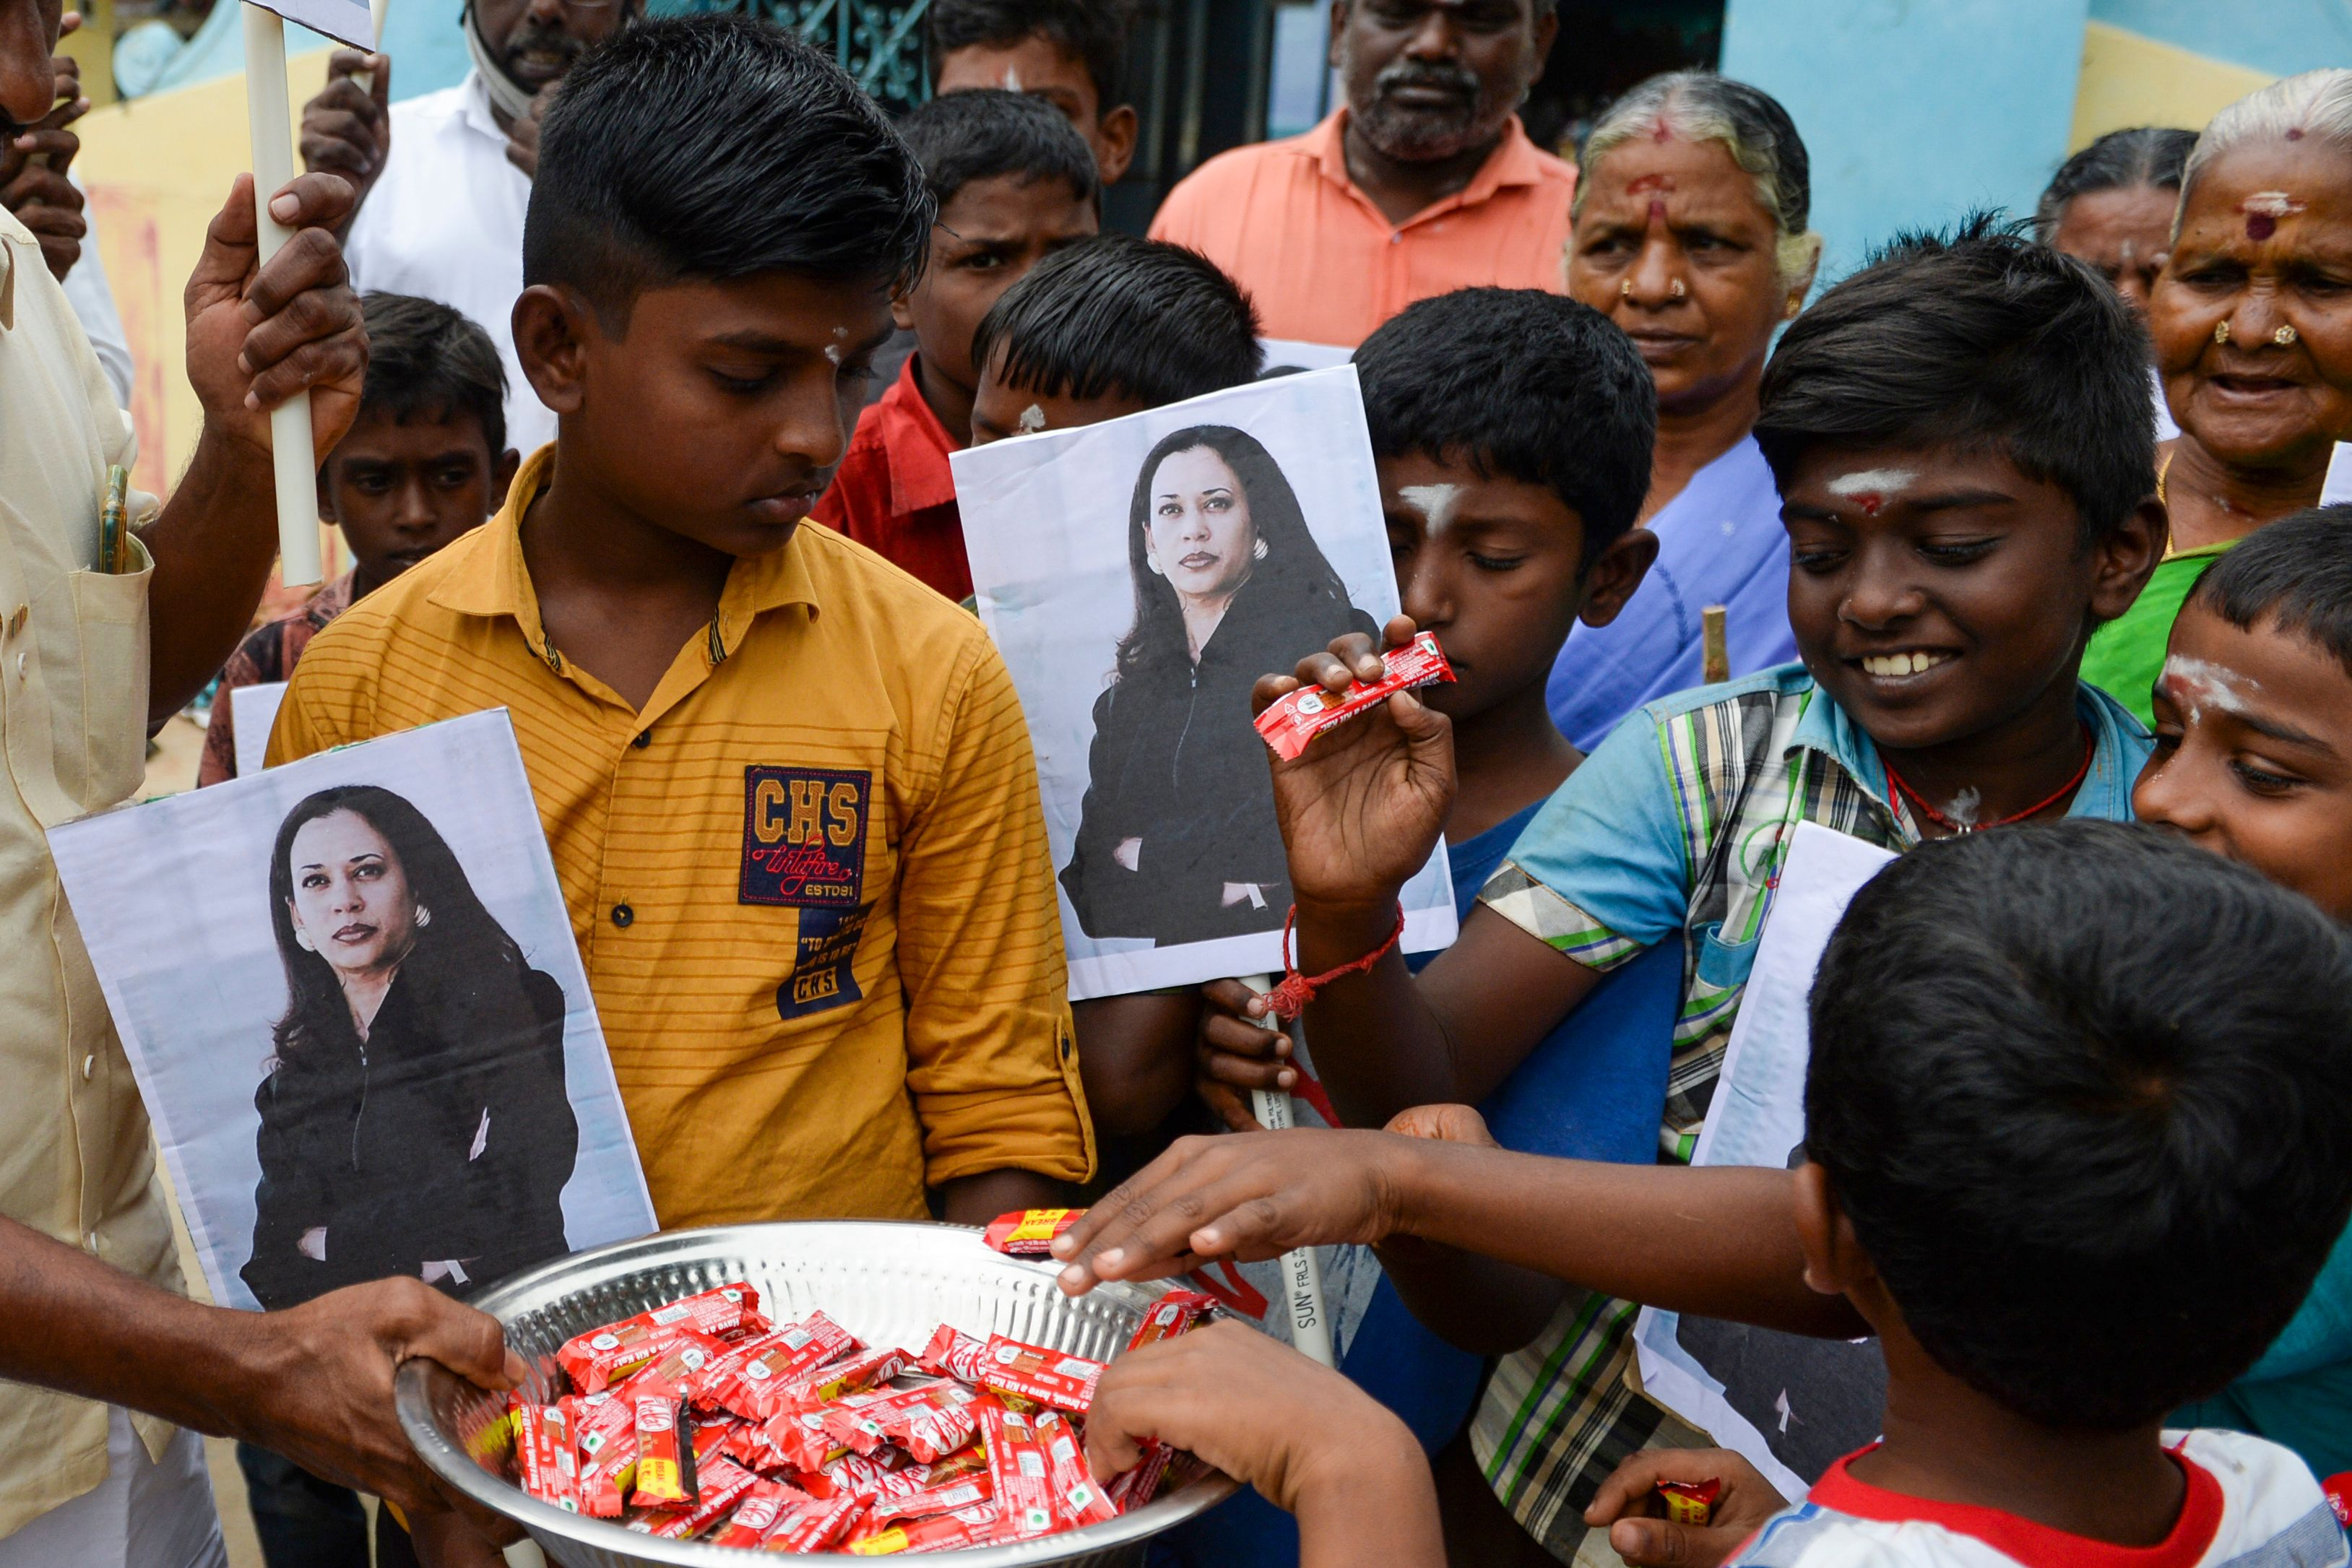 Villagers holding photos of US Vice President-elect Kamala Harris distributes sweets to celebrate at Harris' ancestral village of Thulasendrapuram in the southern Indian state of Tamil Nadu on January 20, 2021.